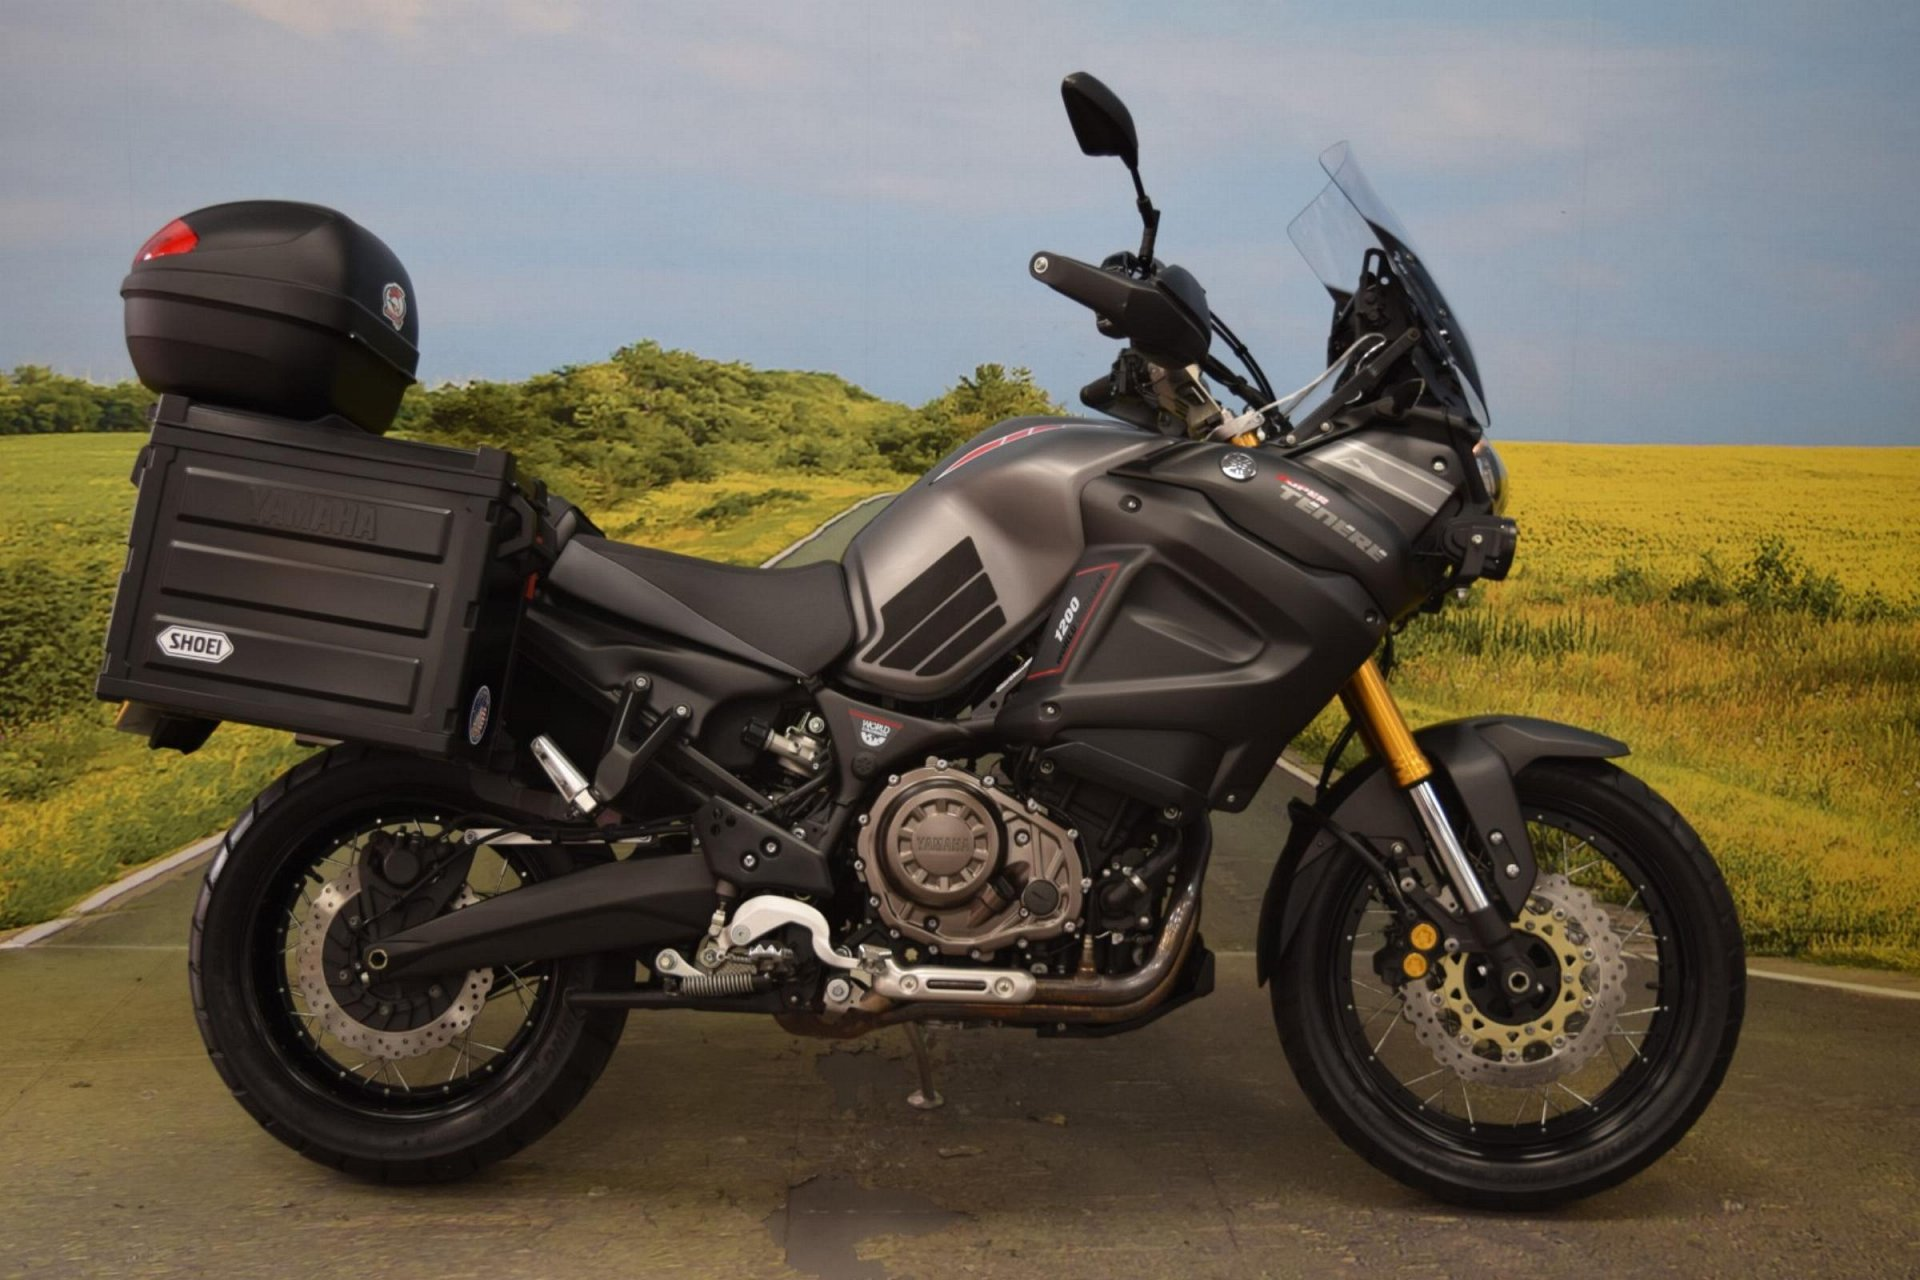 2016 Yamaha XT1200Z Super Tenere for sale in Staffordshire